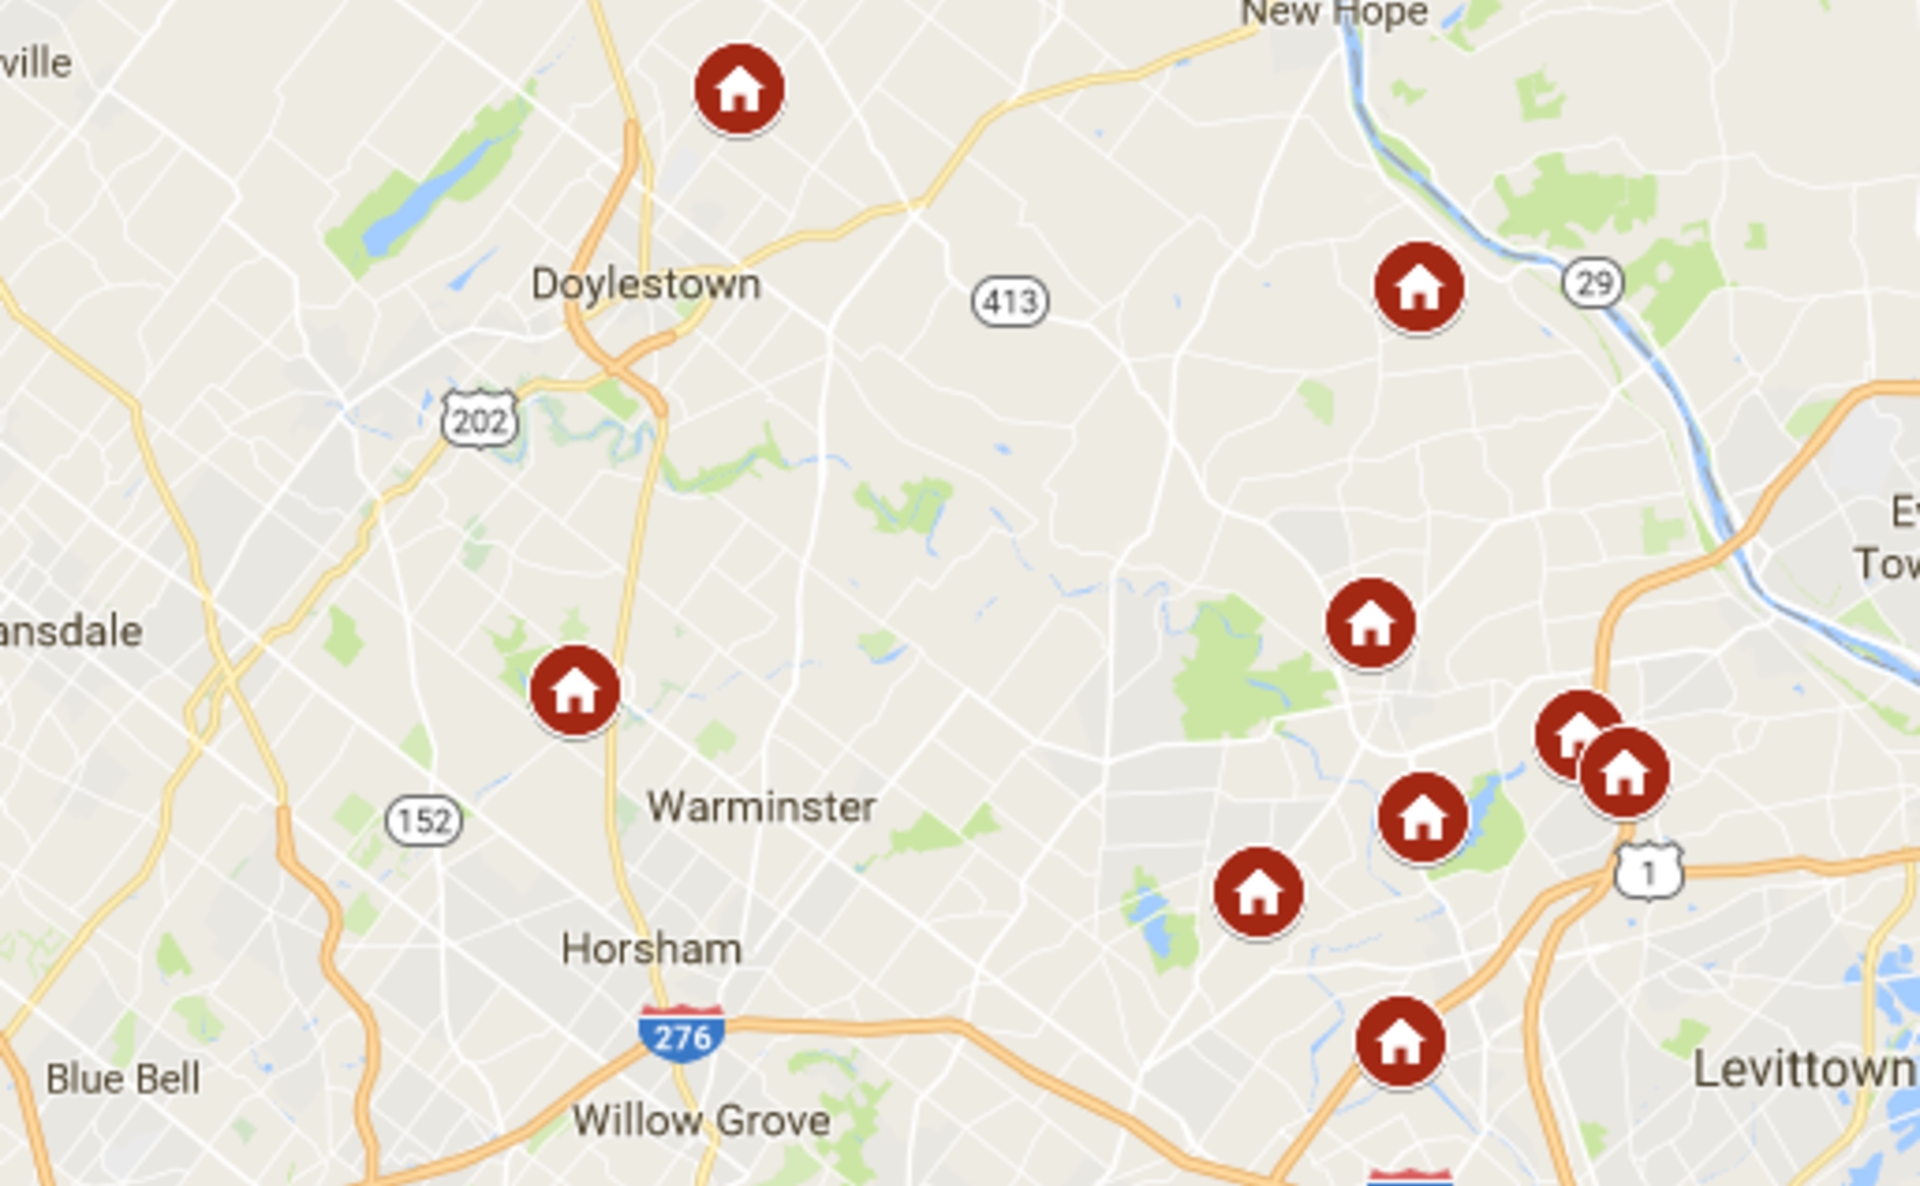 Keller Williams Newtown's open houses November 4th – November 5th